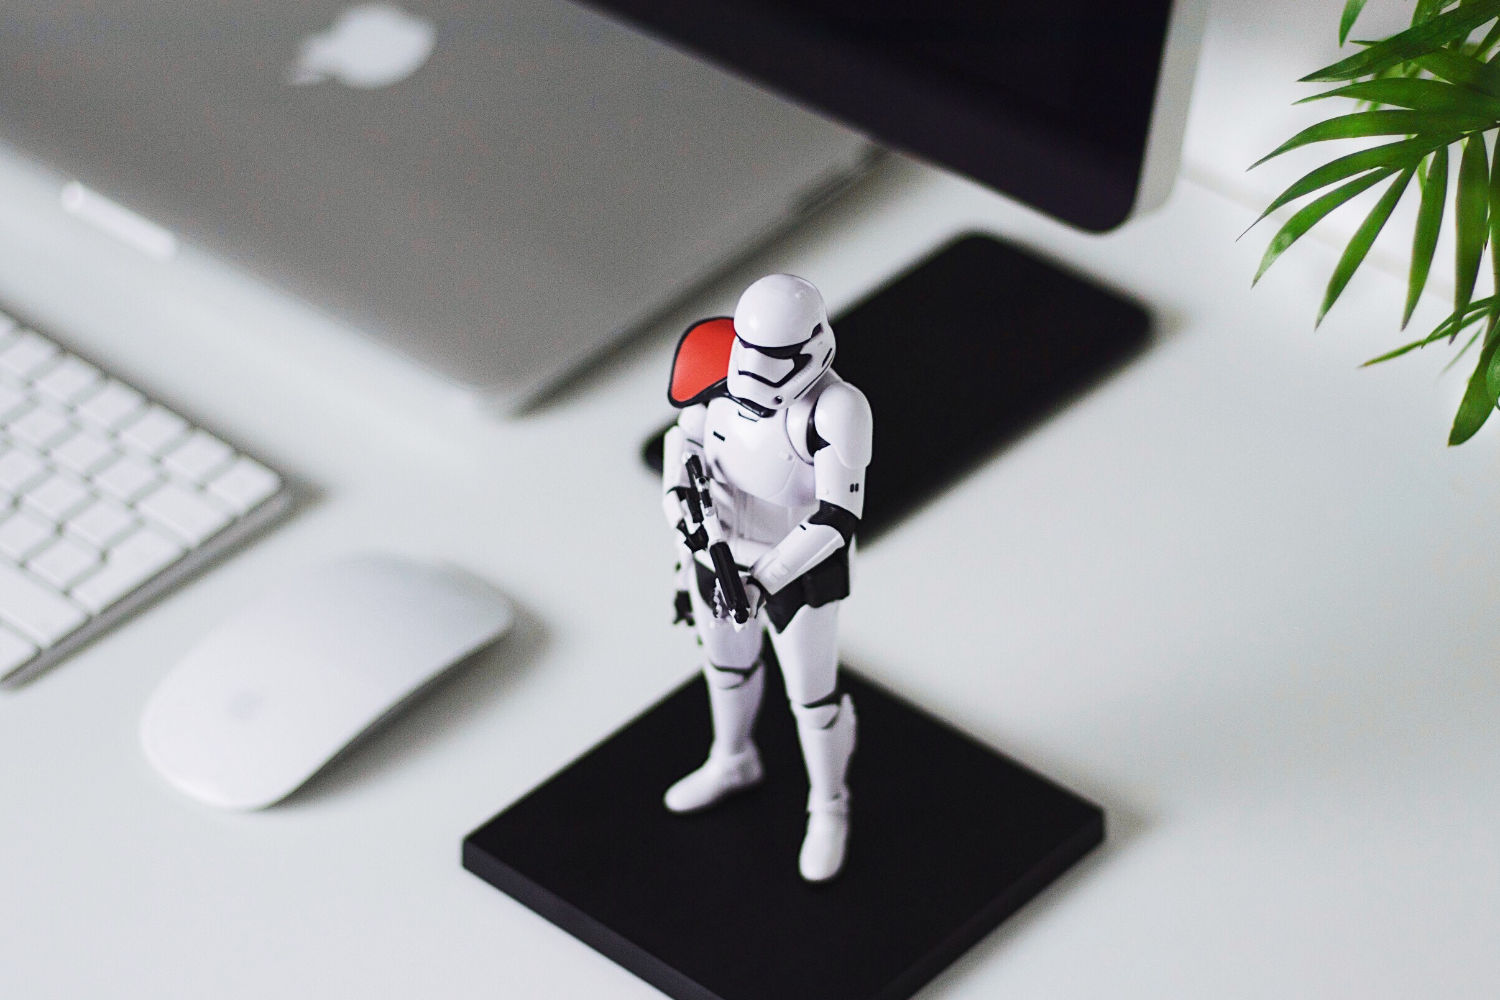 Toy stormtrooper next to laptop